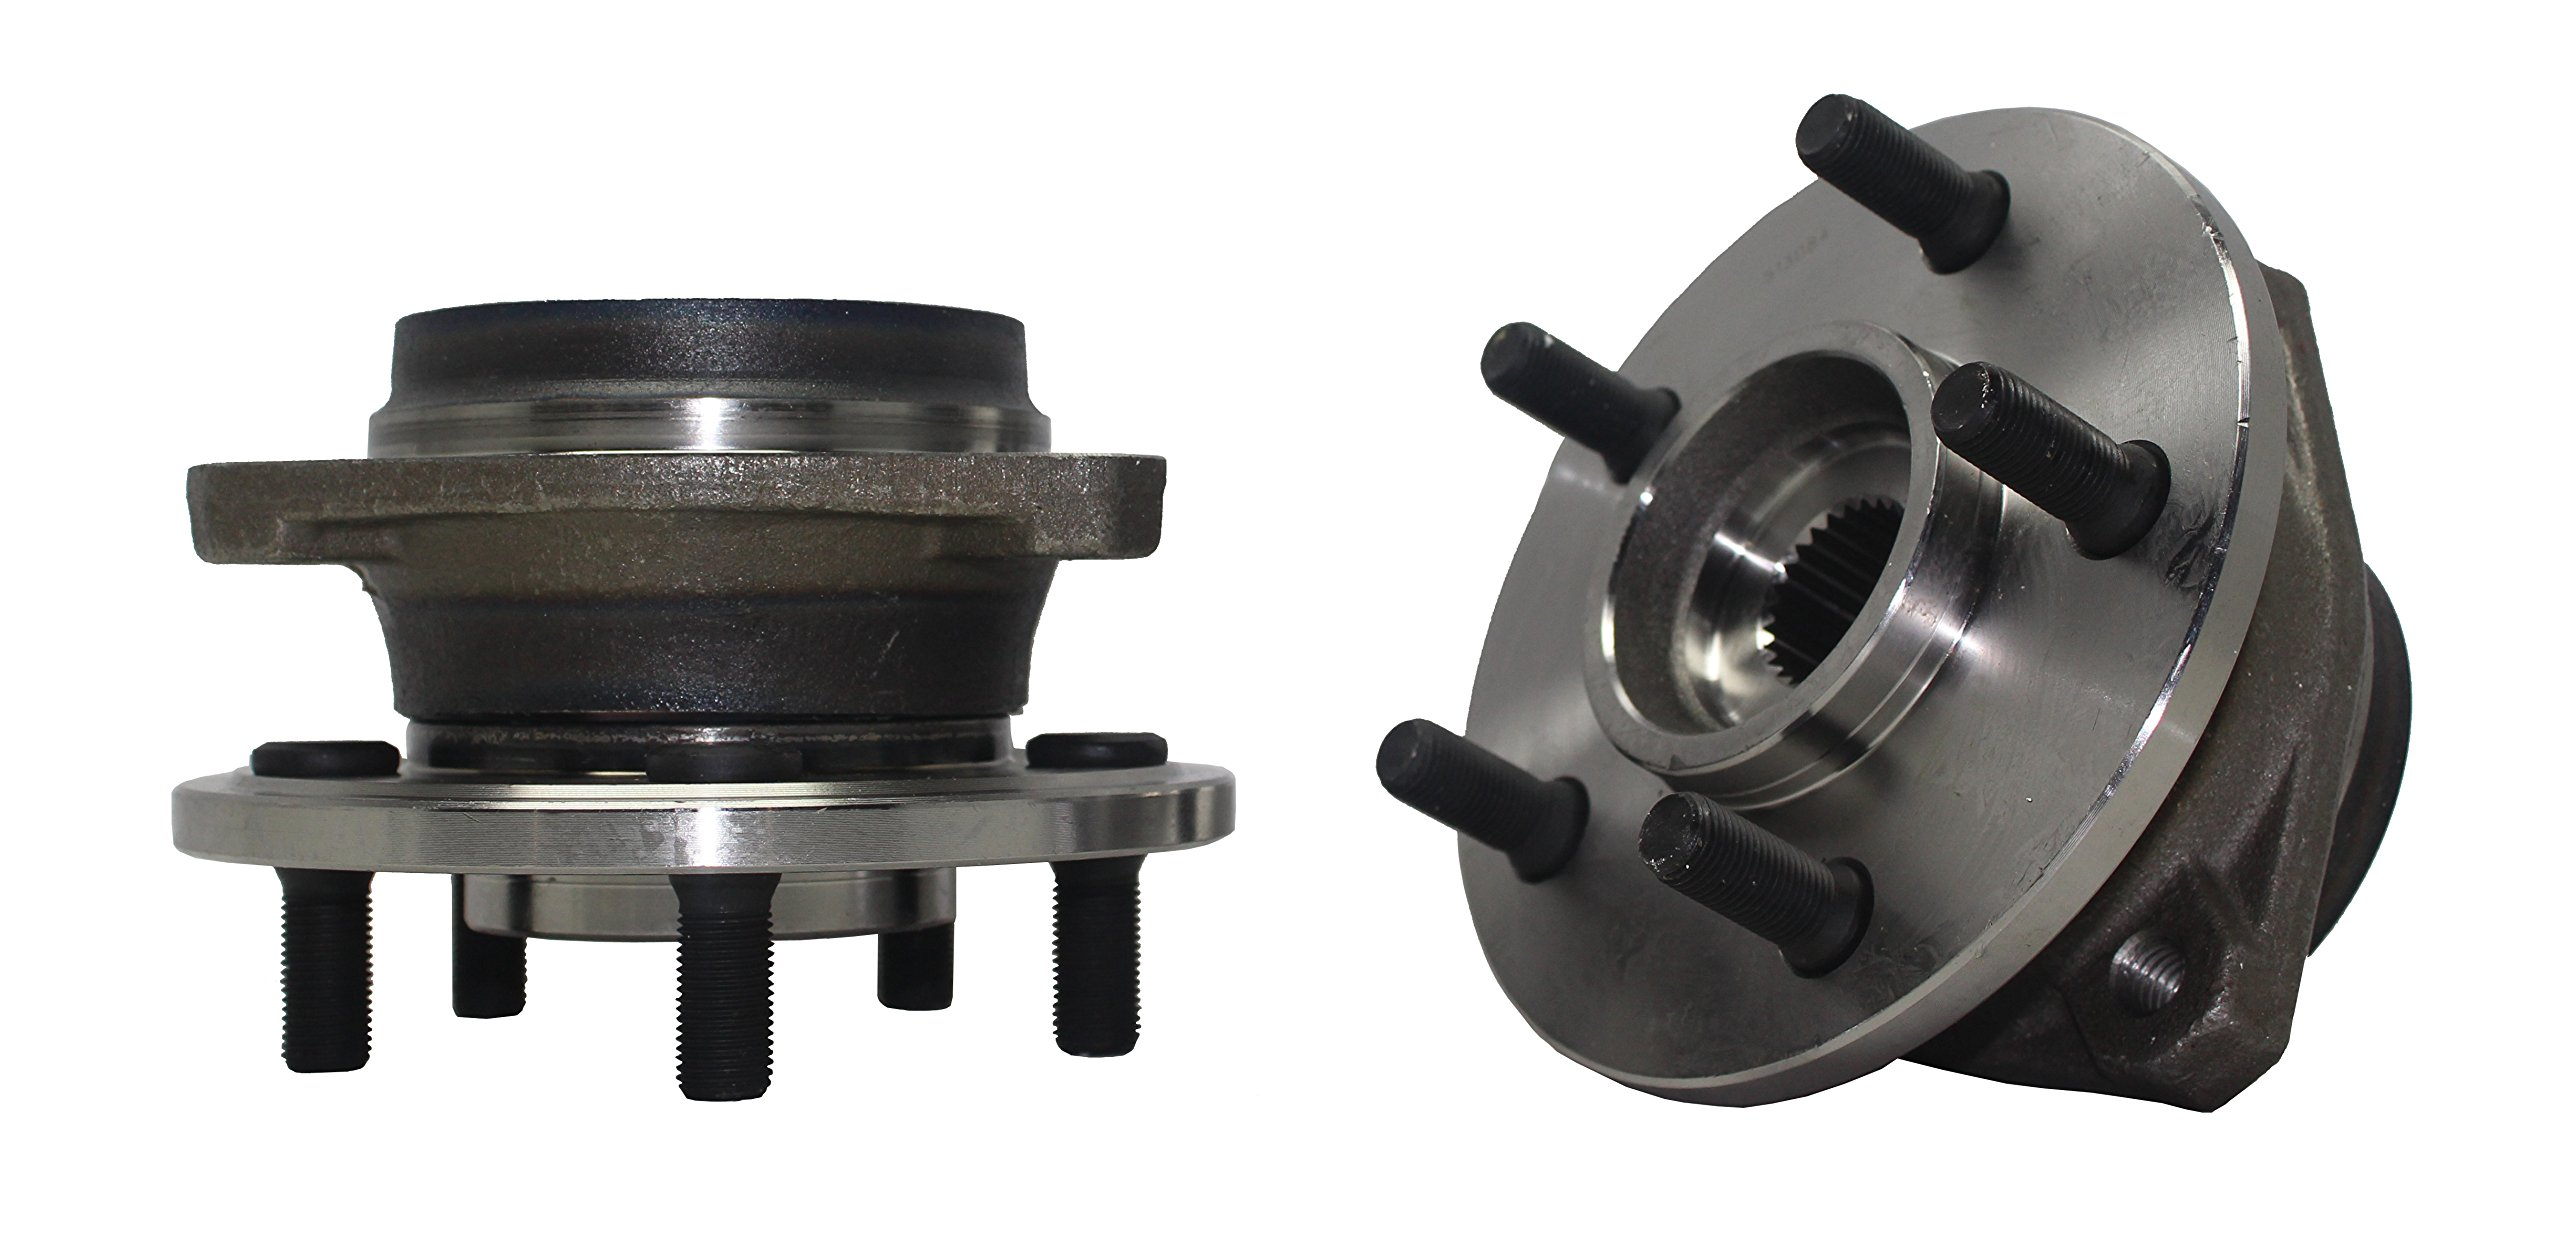 Detroit Axle - 4WD New (Both) Front Wheel Hub and Bearing Assembly for Jeep Cherokee Comanche Grand Cherokee TJ Wrangler - Composite Rotor Only